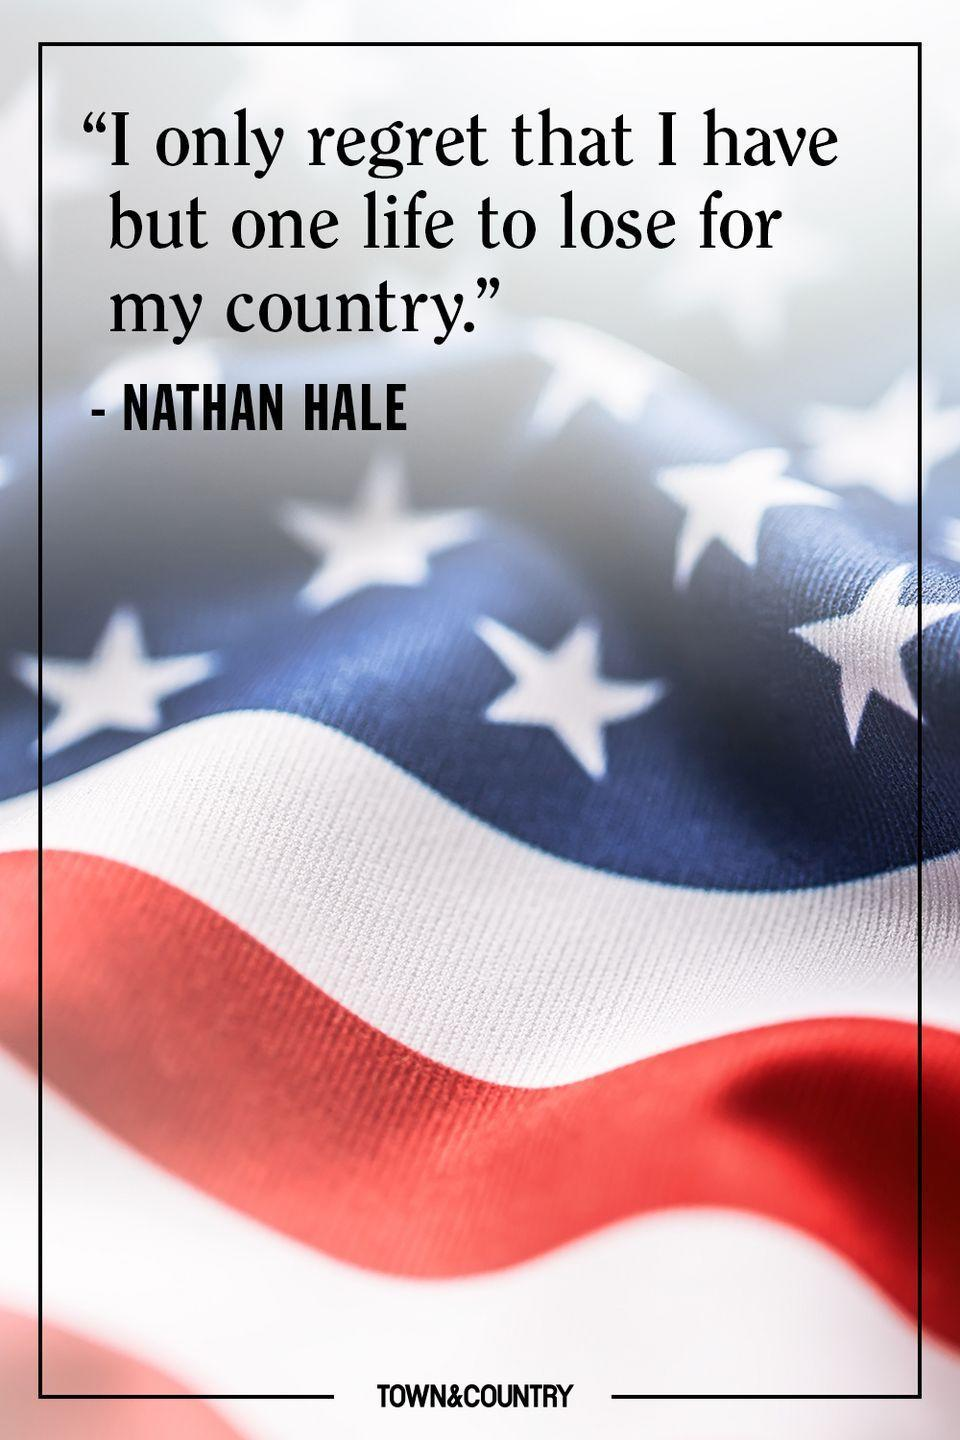 "<p>""I only regret that I have but one life to lose for my country.""</p><p>– Nathan Hale</p>"